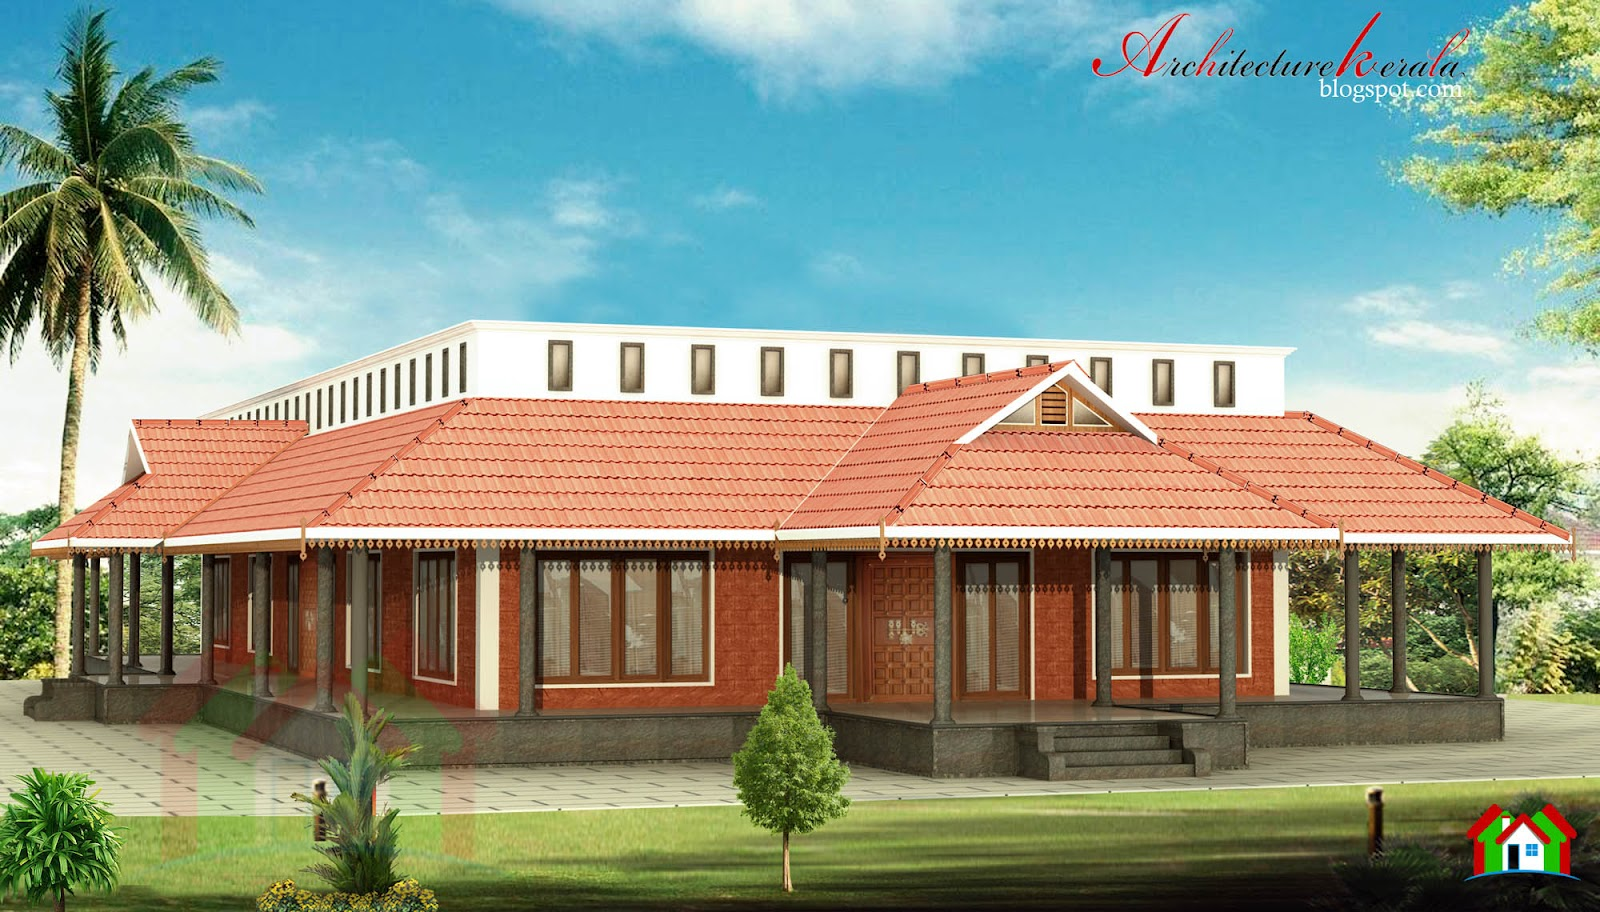 Architecture Kerala: NALUKETTU HOUSE IN 3000 SQ FT on small traditional house plans, custom 2 story house plans, one story traditional house plans, indian tradition house plans, new england traditional house plans, affordable 4 bedroom house plans, traditional japanese house floor plans, modern traditional house plans, traditional home house plans, florida traditional house plans, amish traditional house plans, exterior house plans,